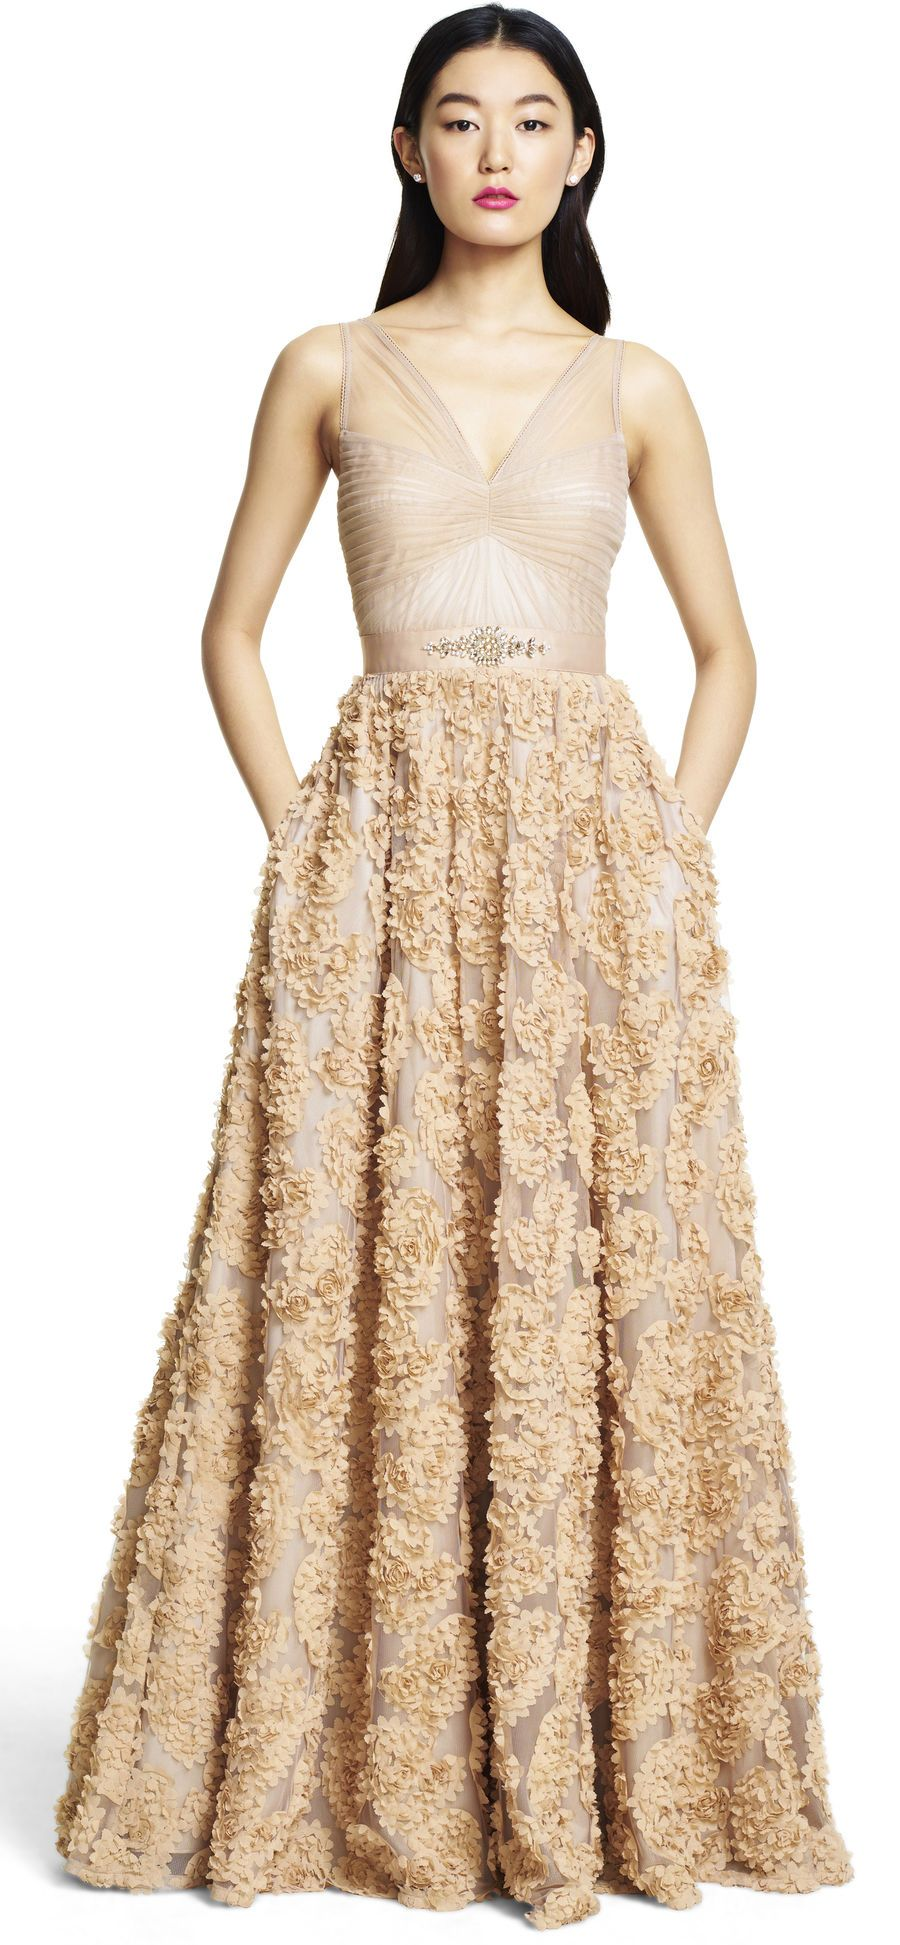 f29f4a0796f1 Embellished Petal Chiffon Ball Gown | Cocktail Dresses and Evening ...